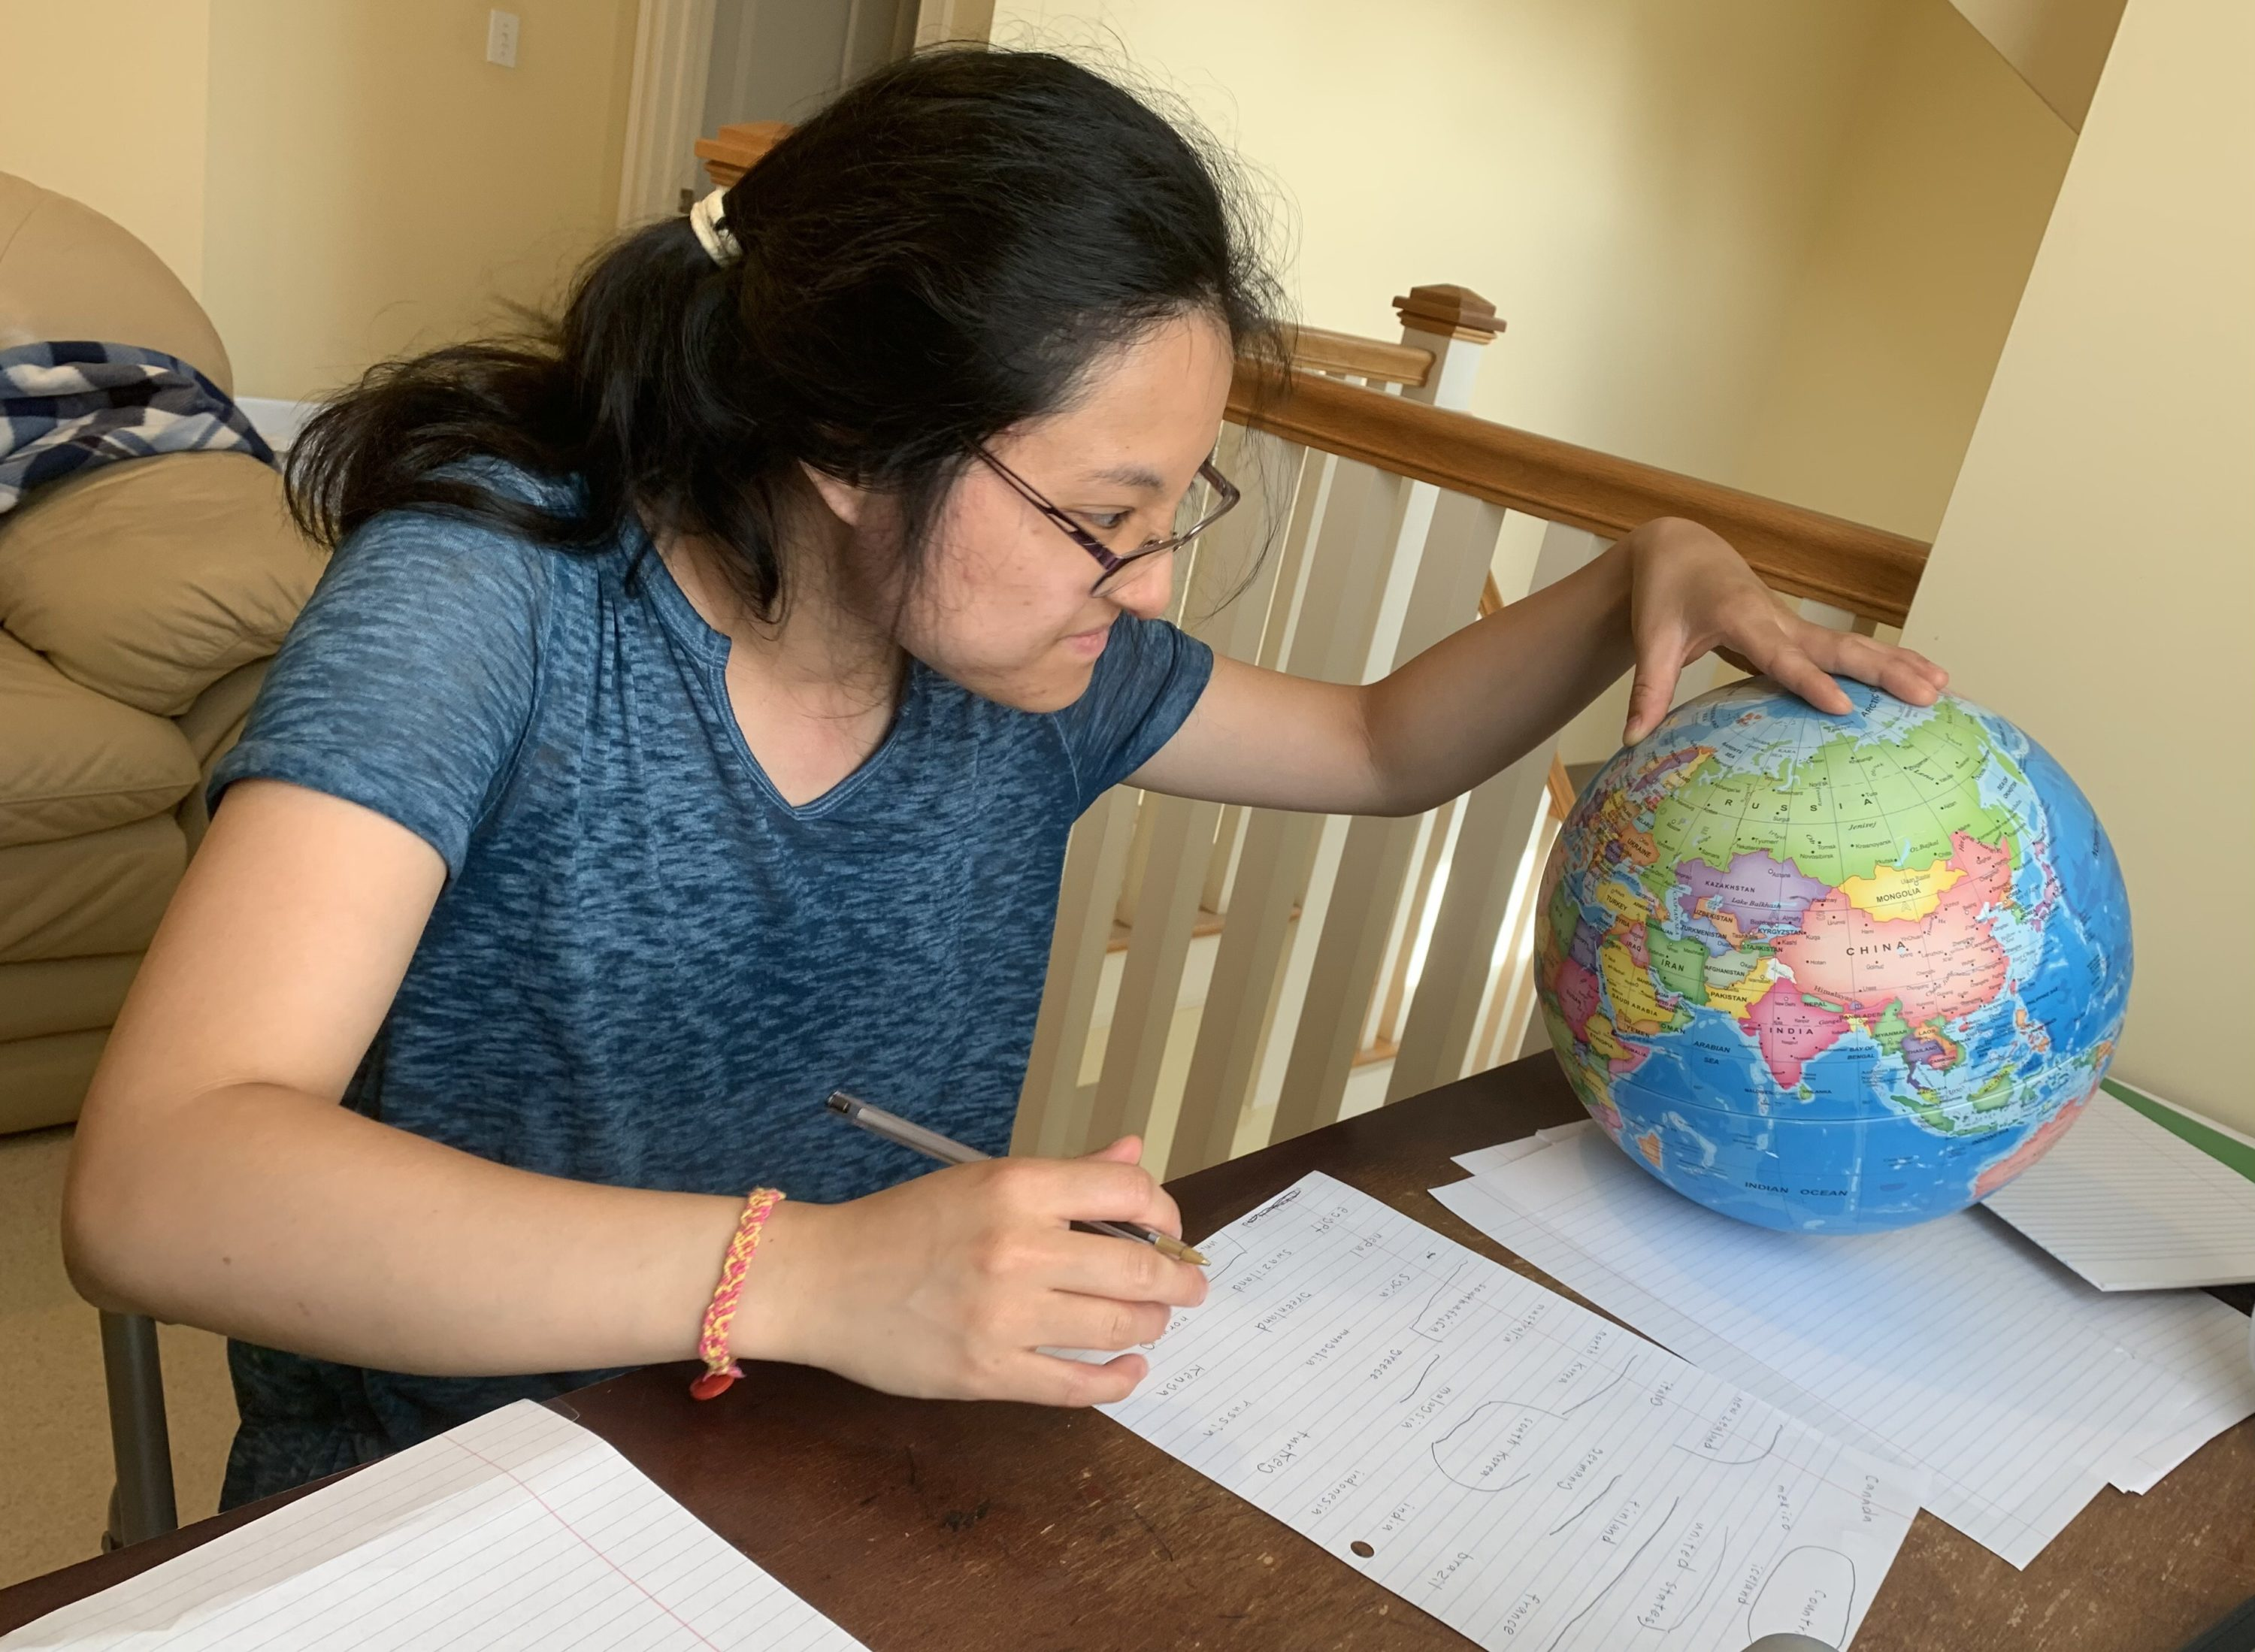 Stephanie Li hopes to take college classes to explore her interests in math and geography. (photo courtesy Katelyn Li)